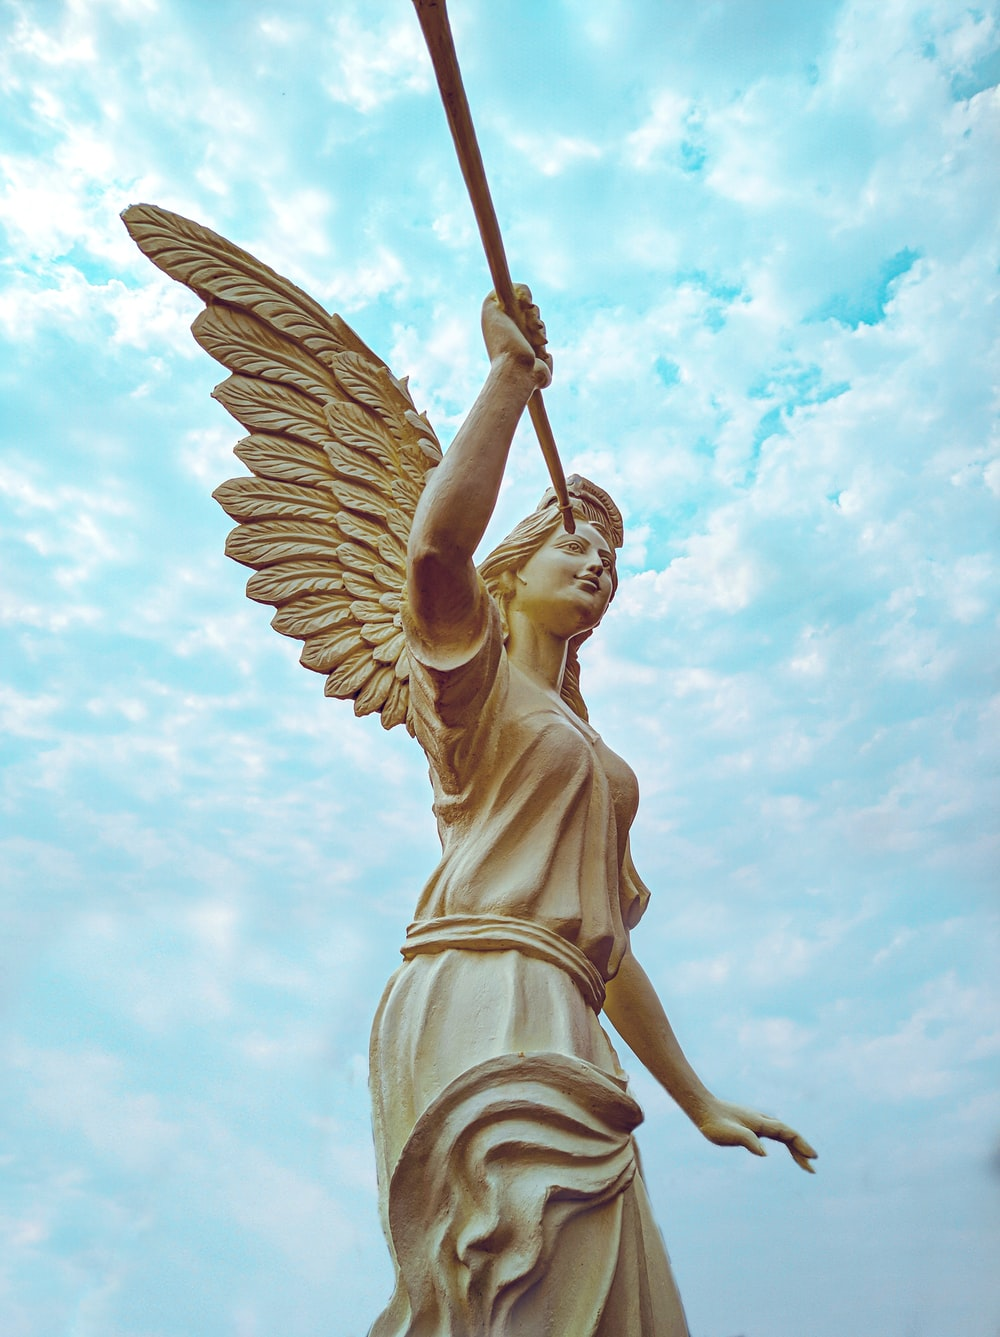 angel statue under white clouds and blue sky during daytime